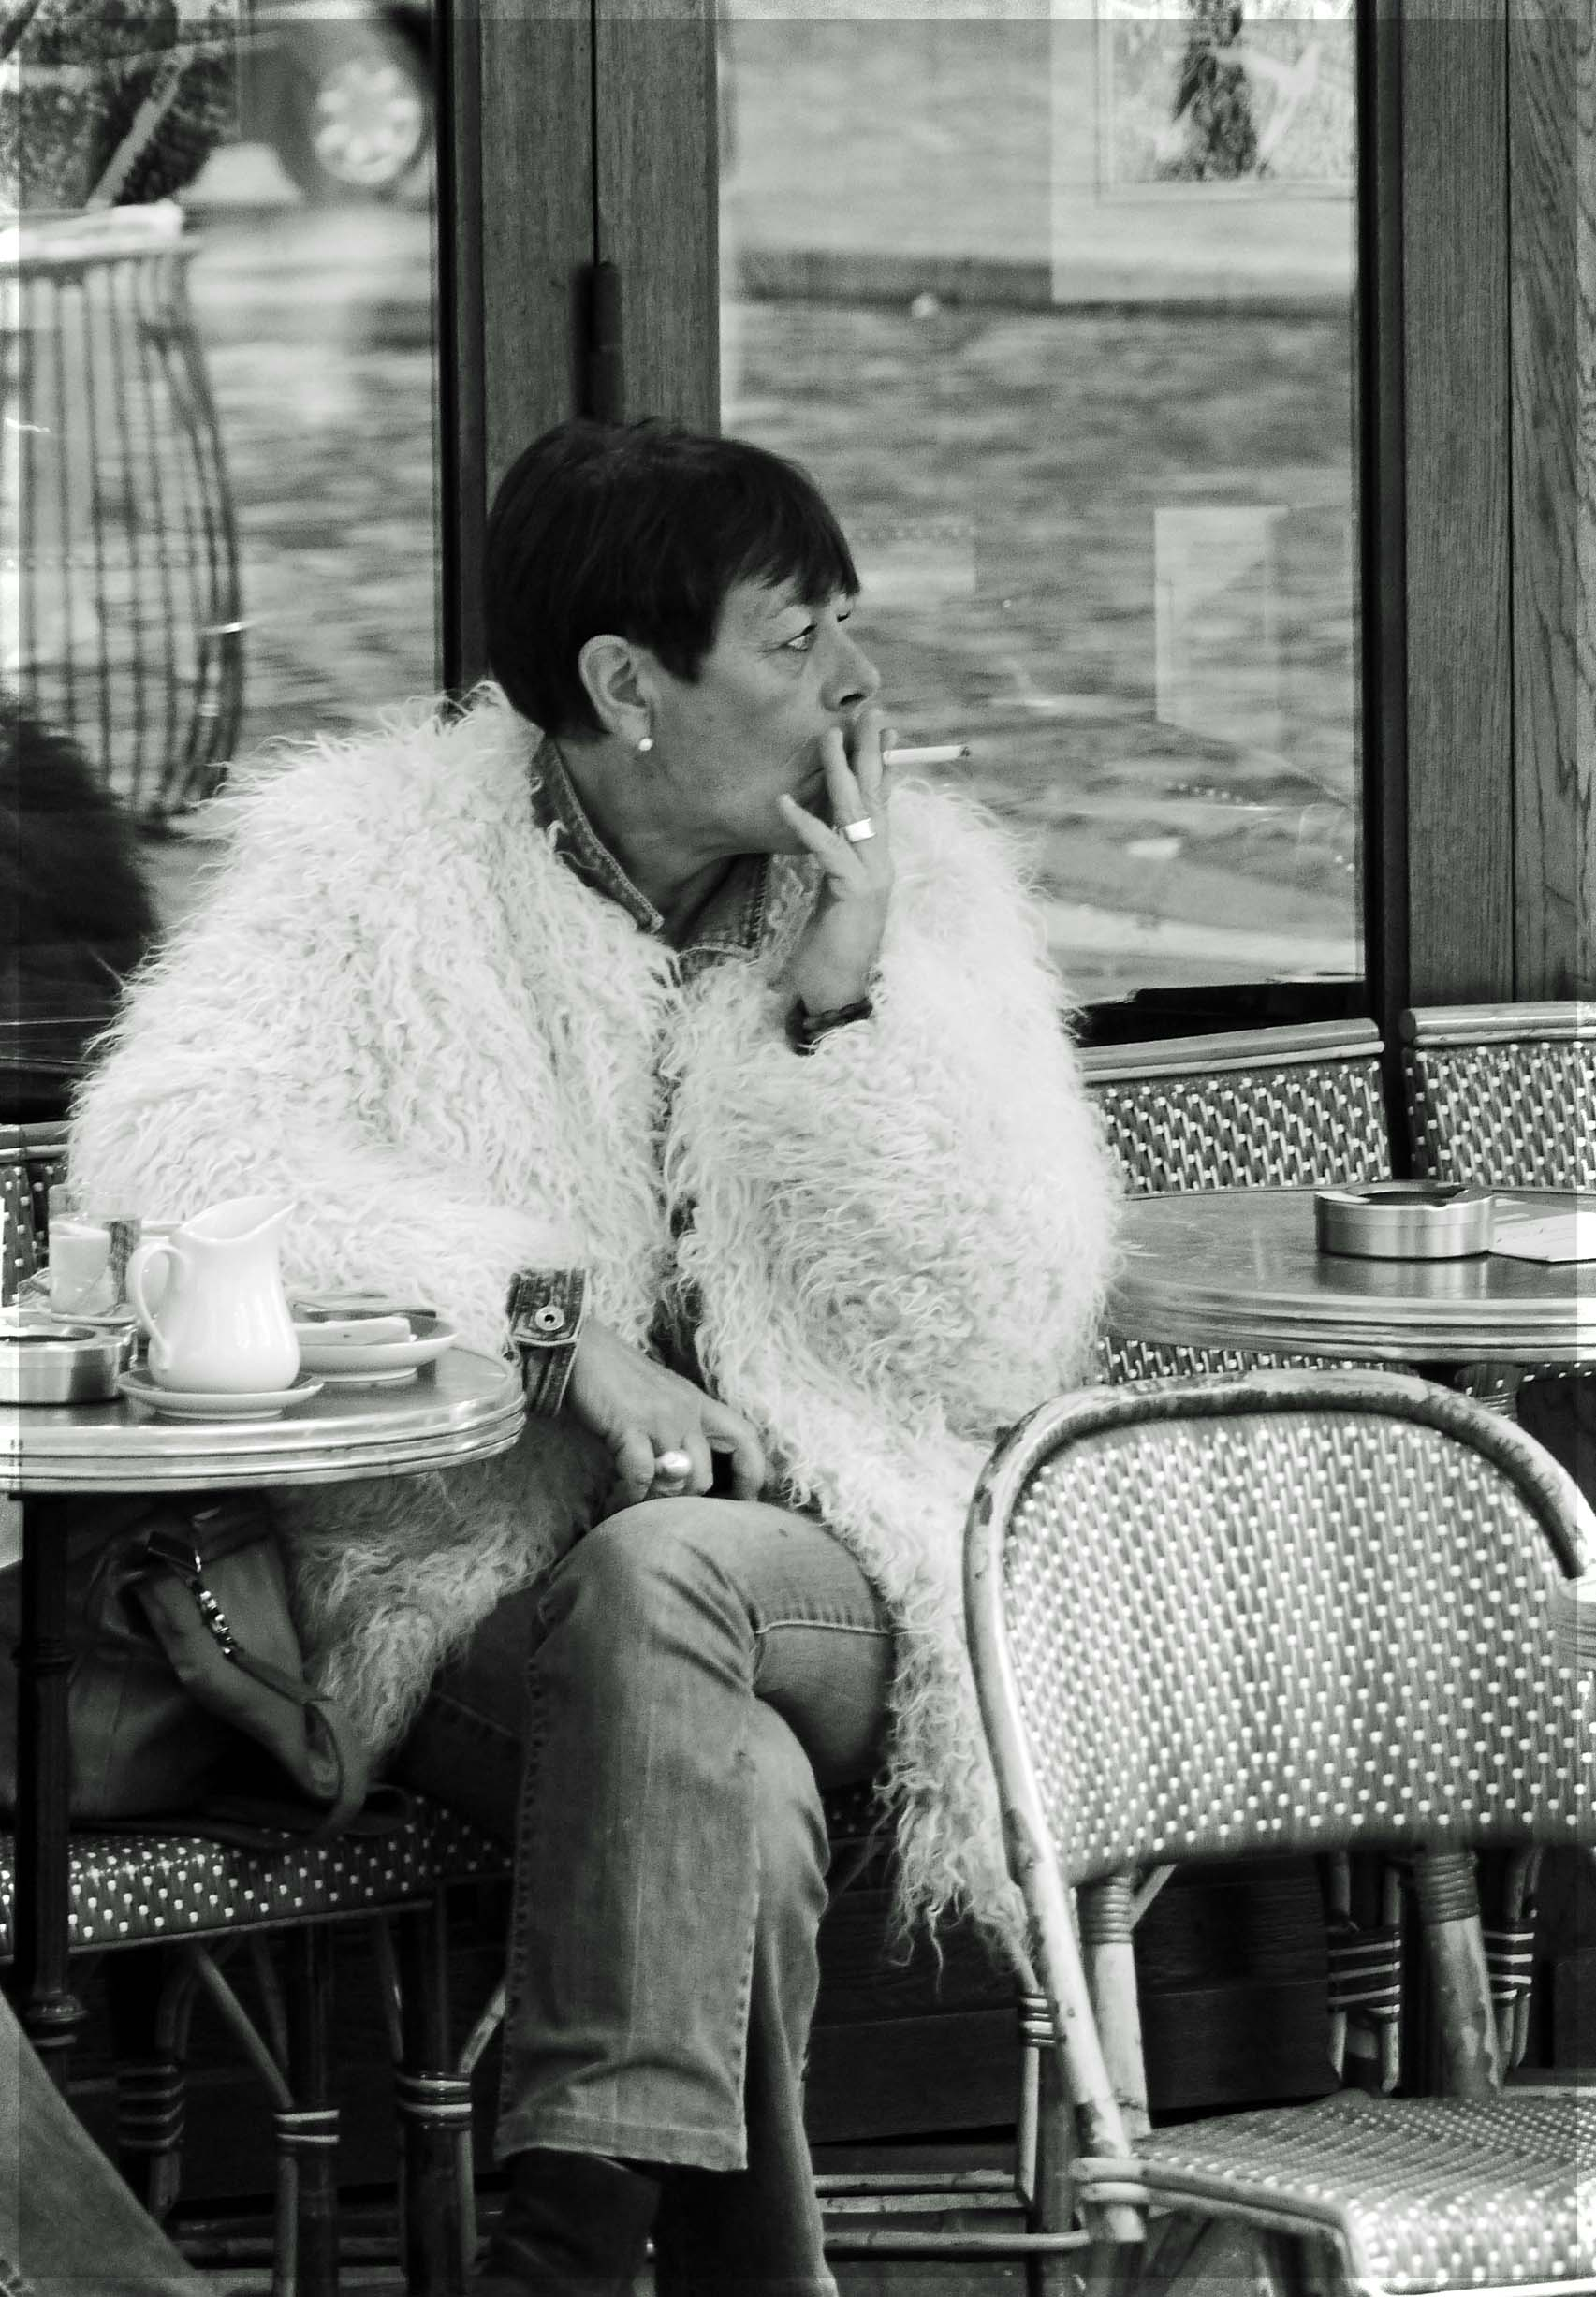 Black and white photo of lady smoking at a cafe table